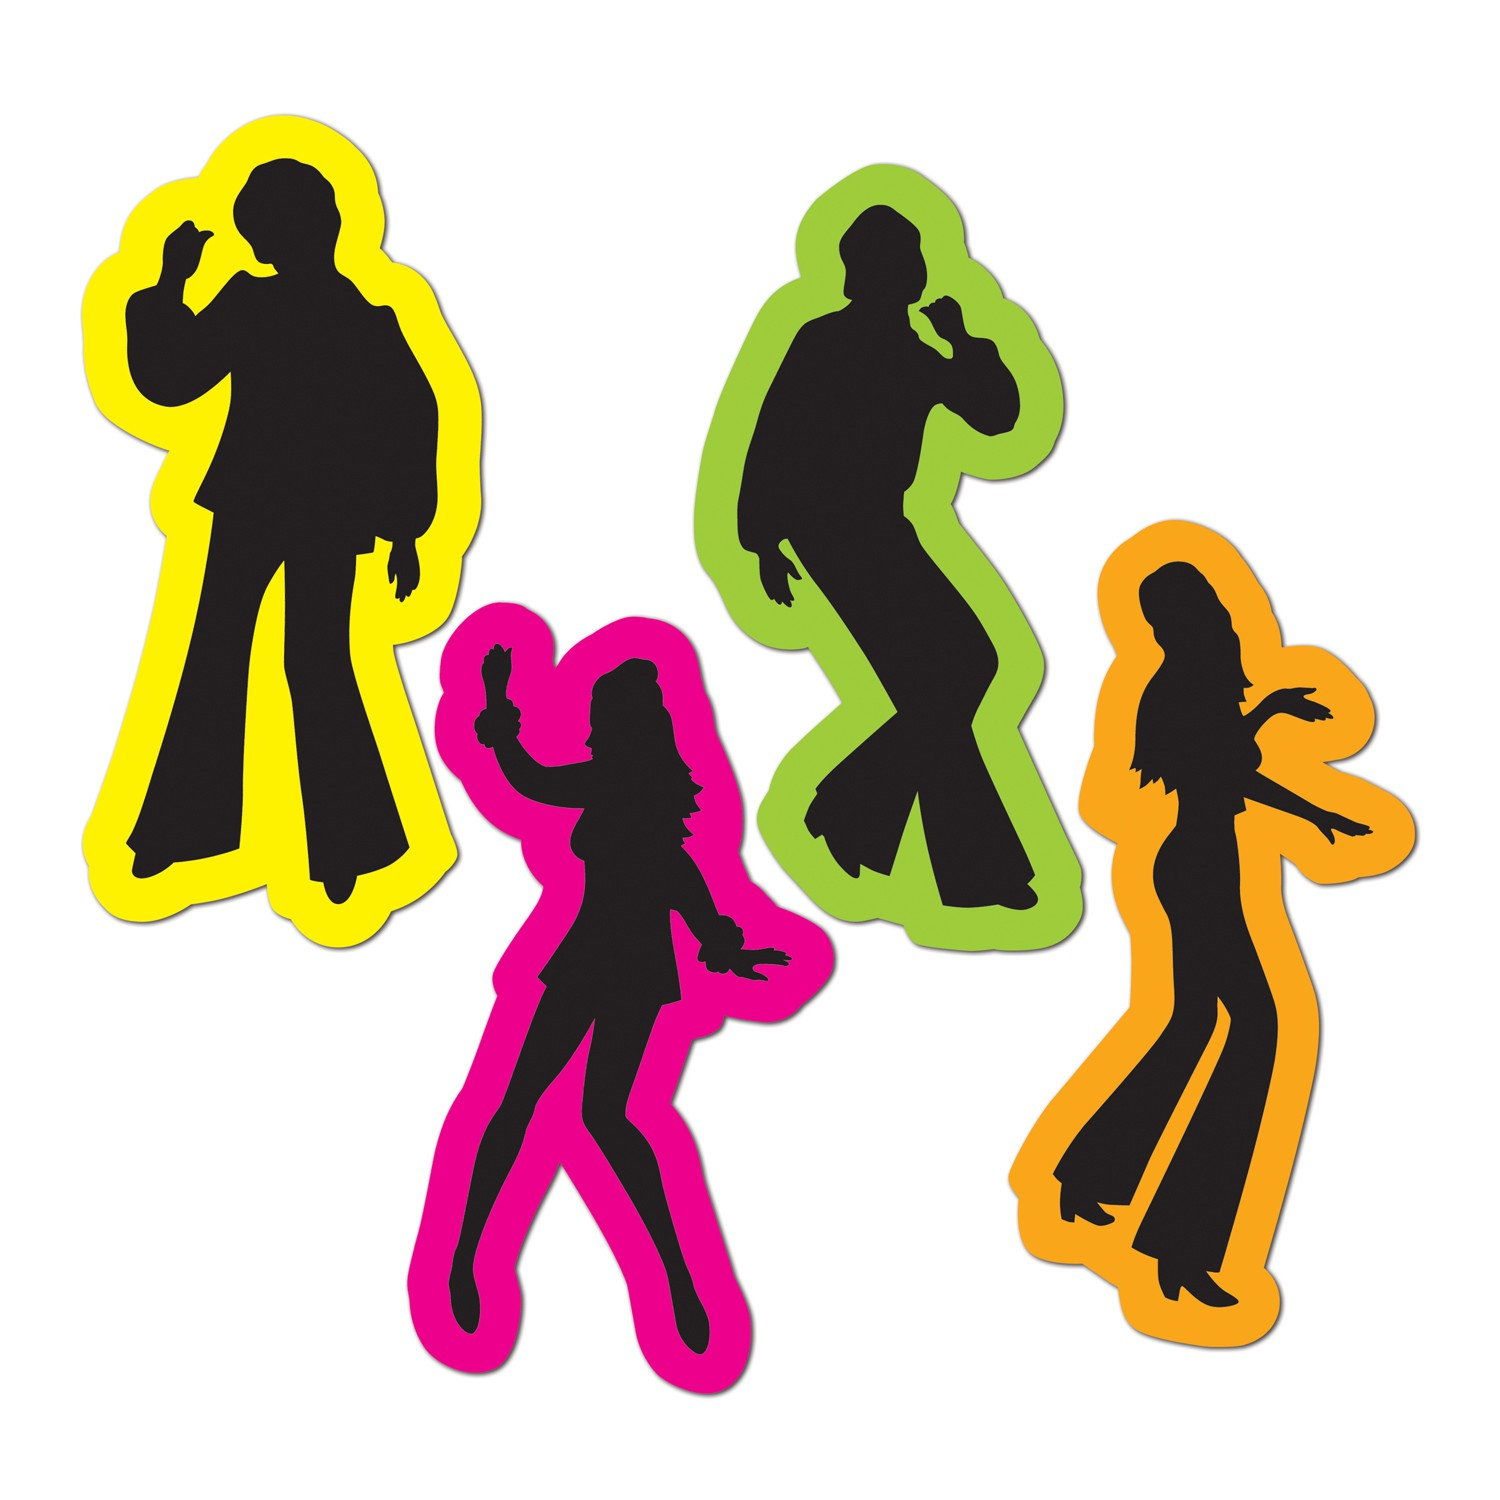 1970'S DISCO DANCING RETRO FIGURE SILHOUETTE CUT OUTS - PK OF 4